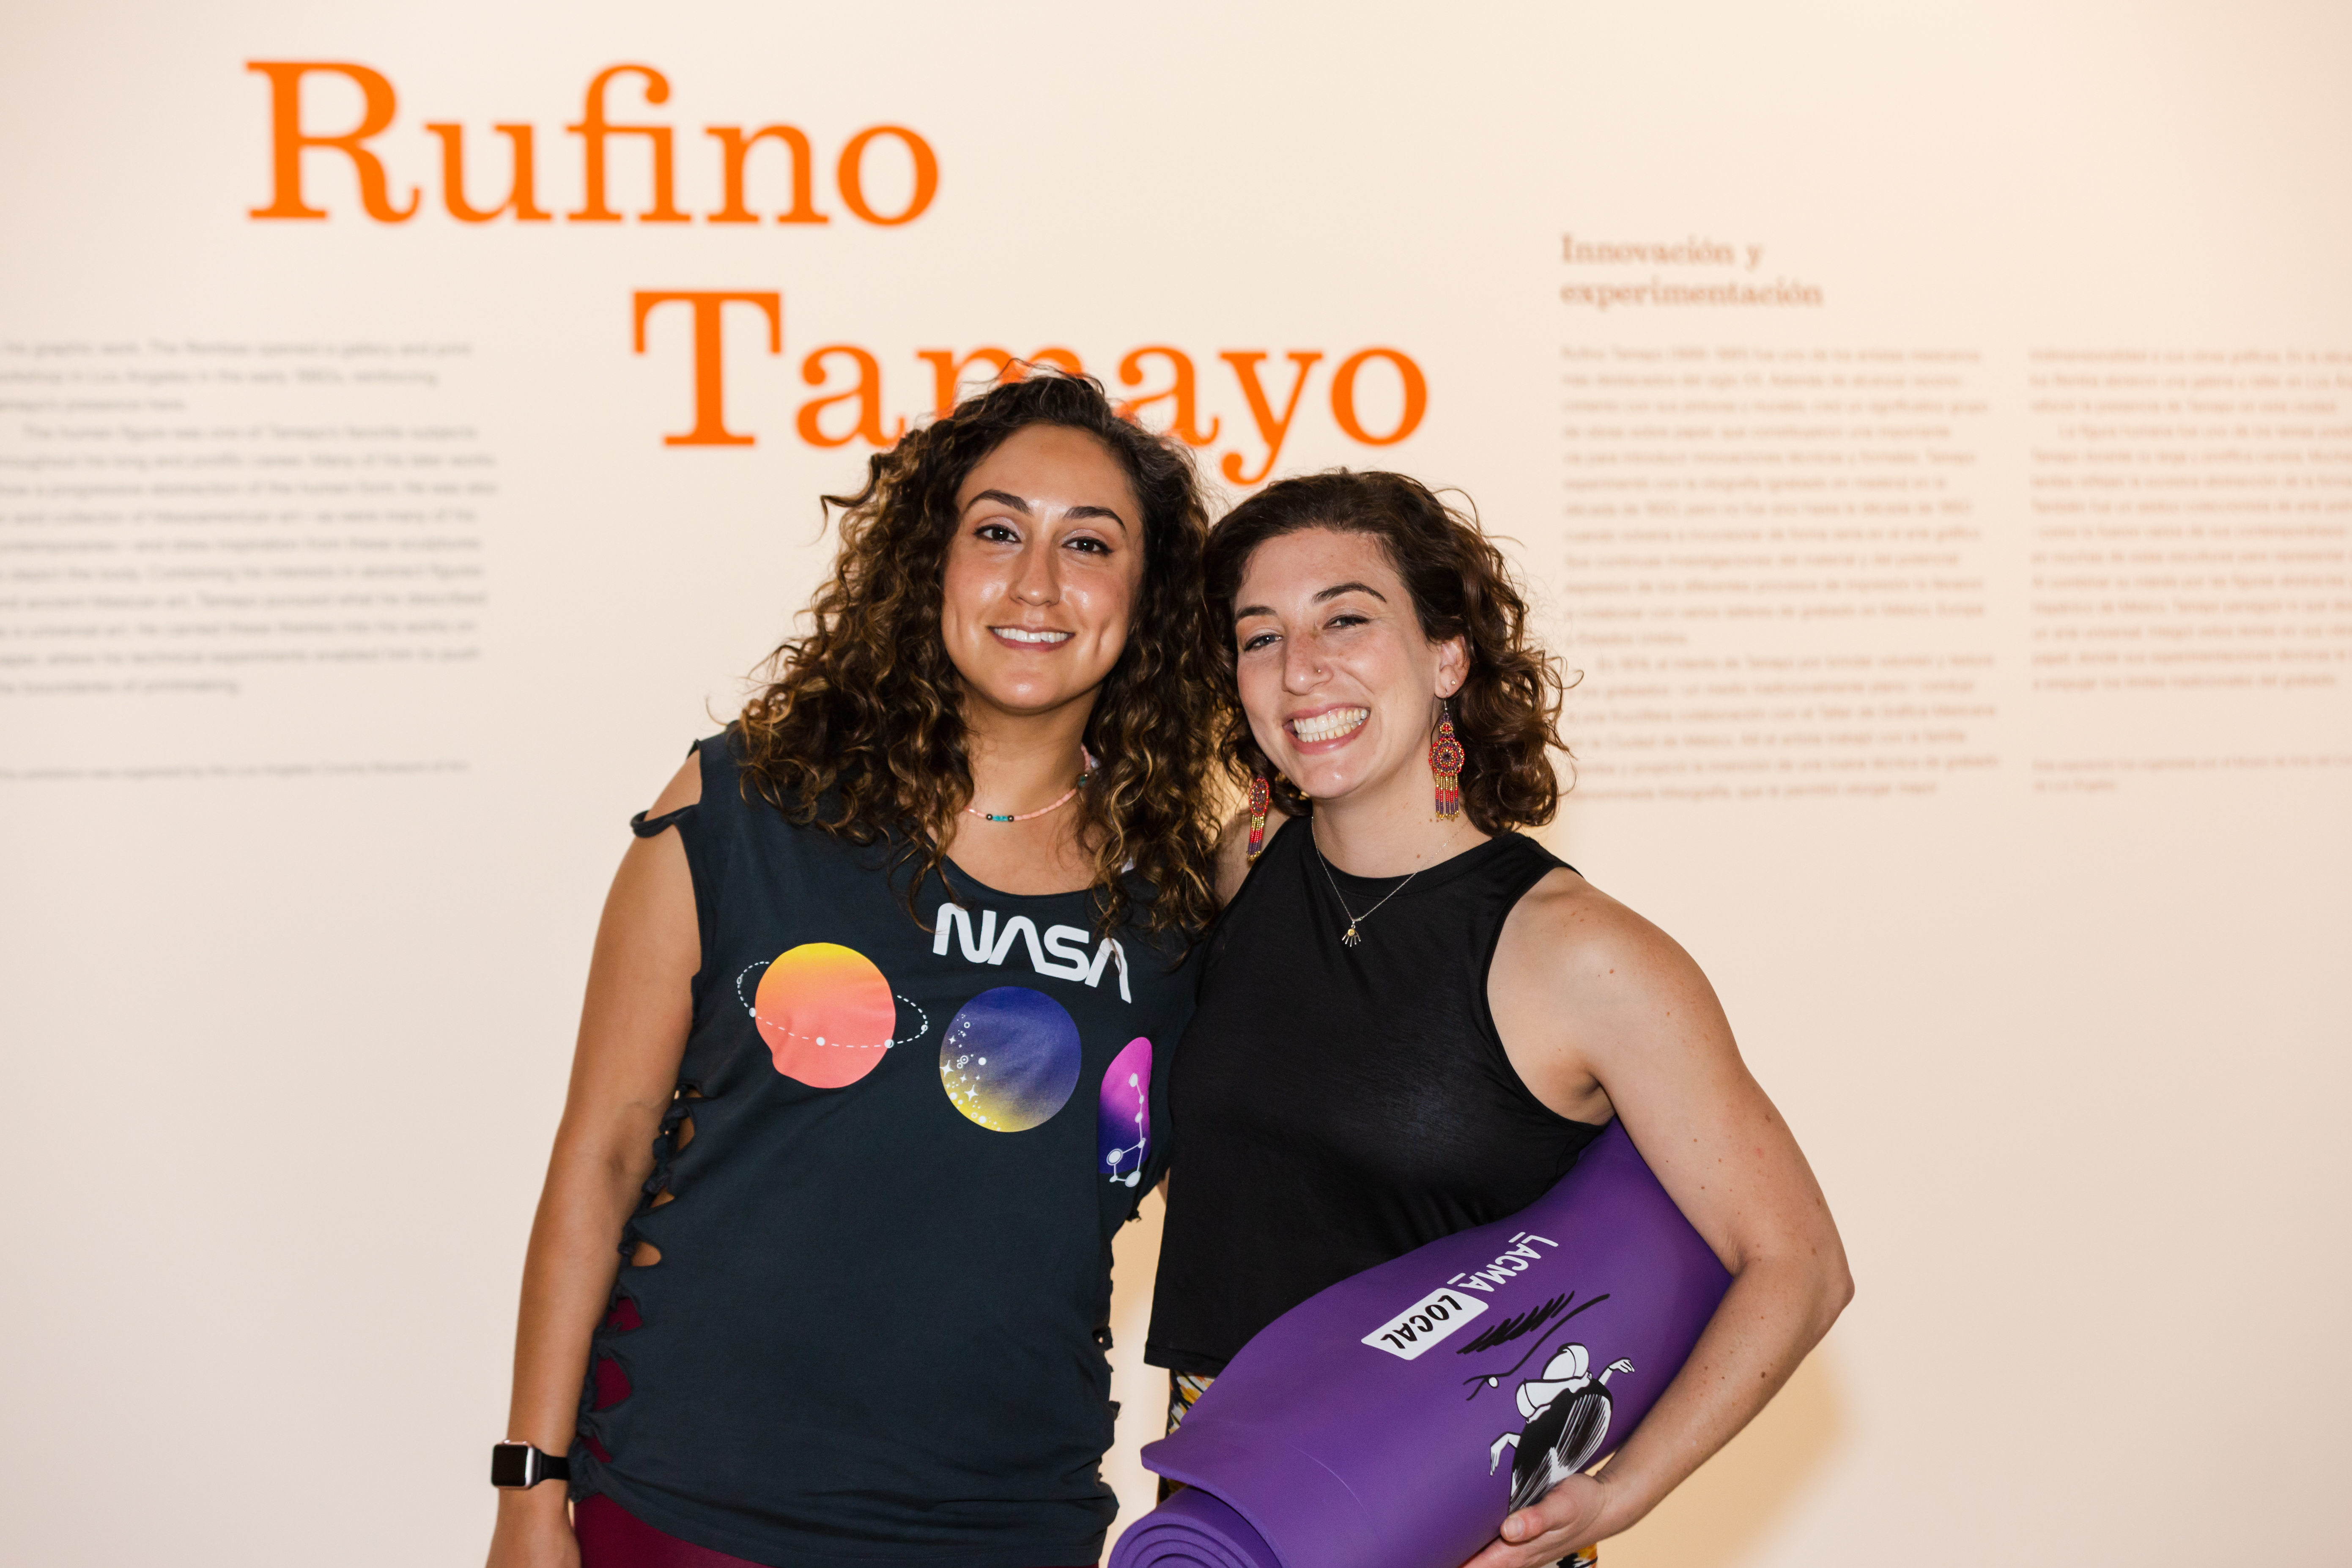 Teresa Flores (left) and Rebecca Plevin (right) at TamaYoga, photo ©️ Museum Associates/LACMA, by HRDWRKER